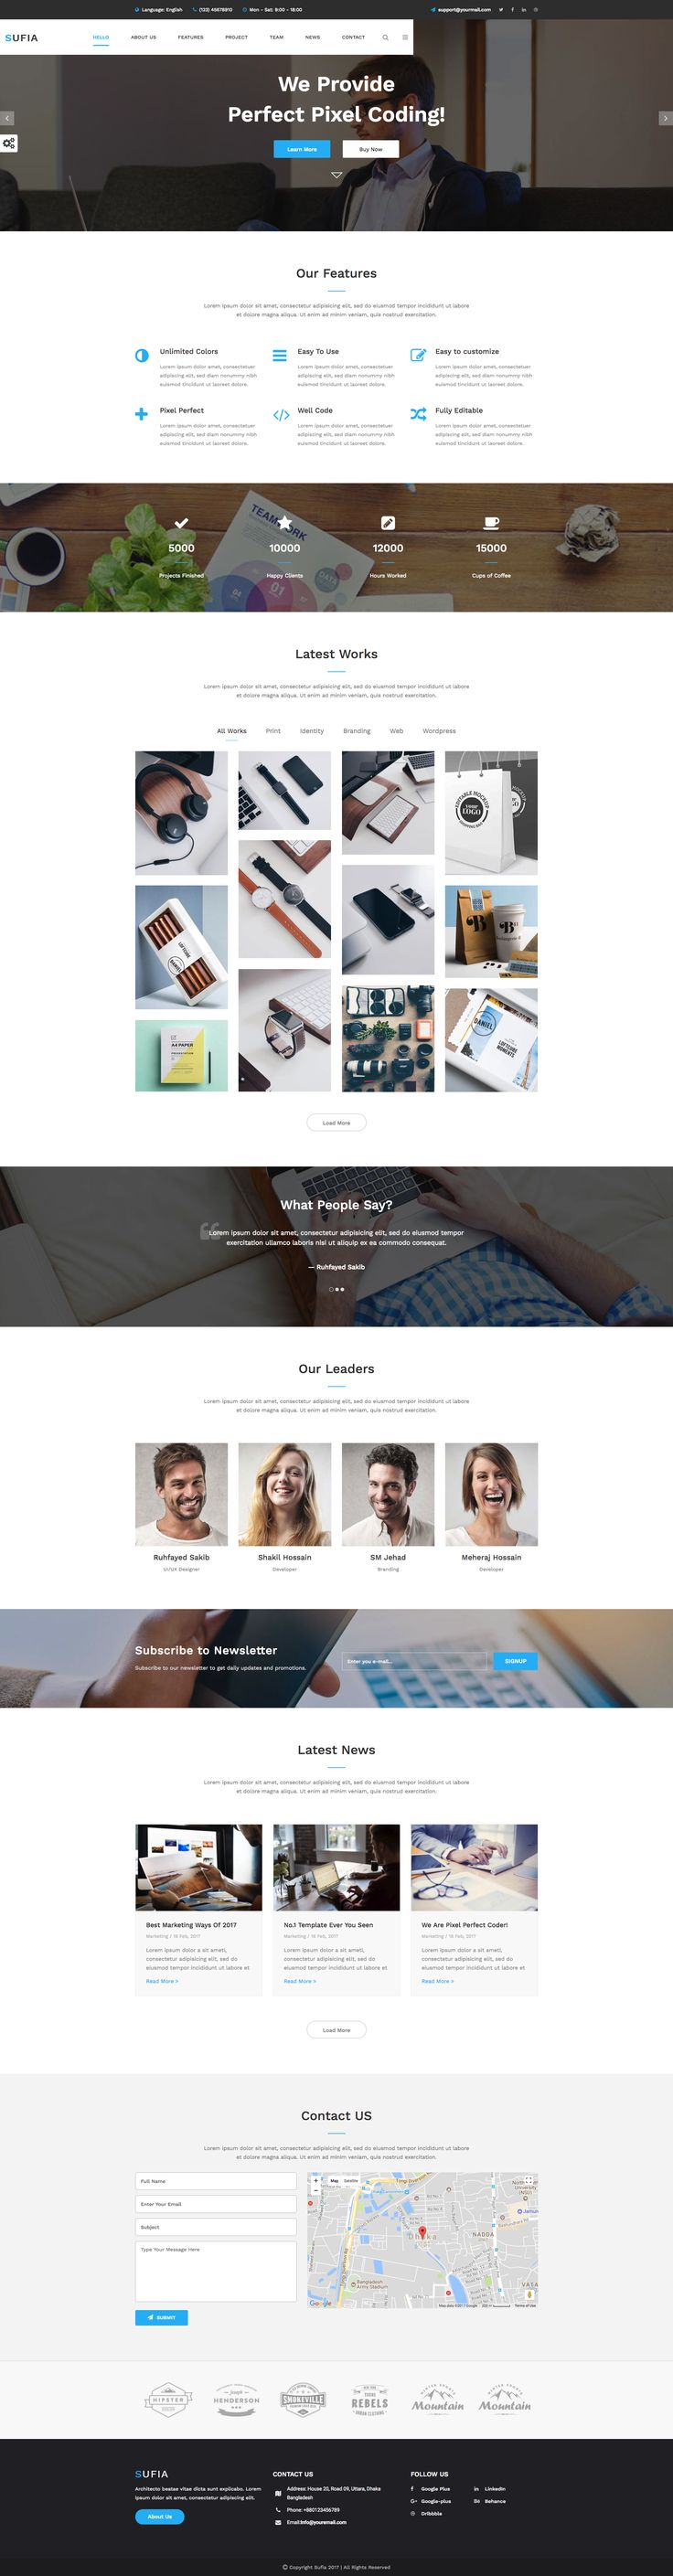 15 best template bootstrap images on Pinterest | Template, Patterns ...